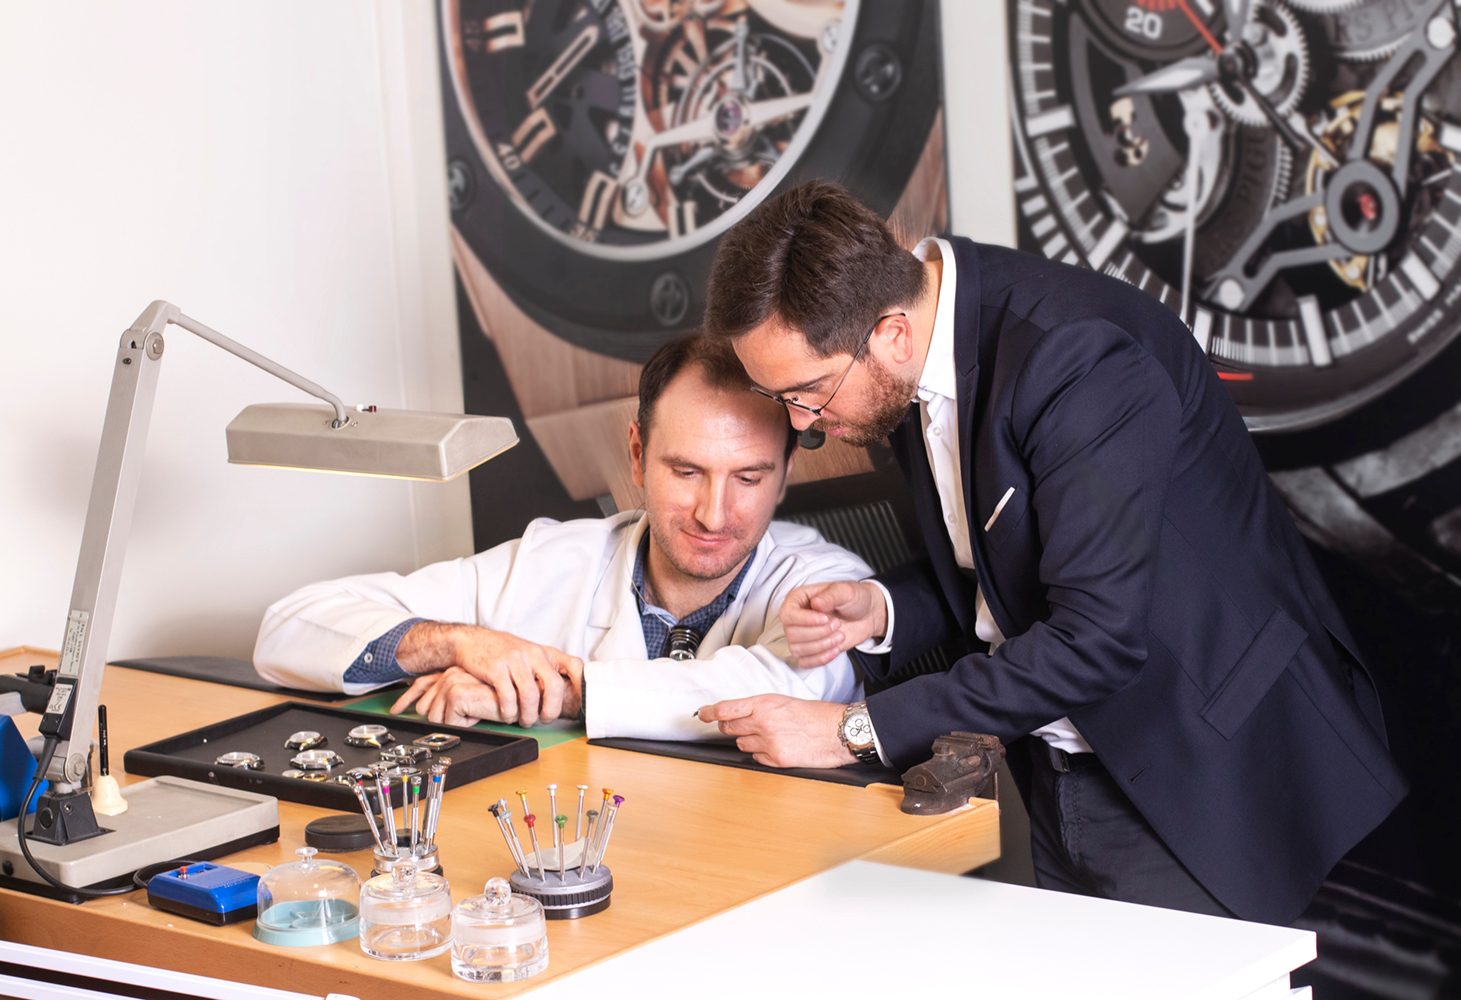 CRESUS : THE EXPERT IN PRE-OWNED LUXURY WATCHES